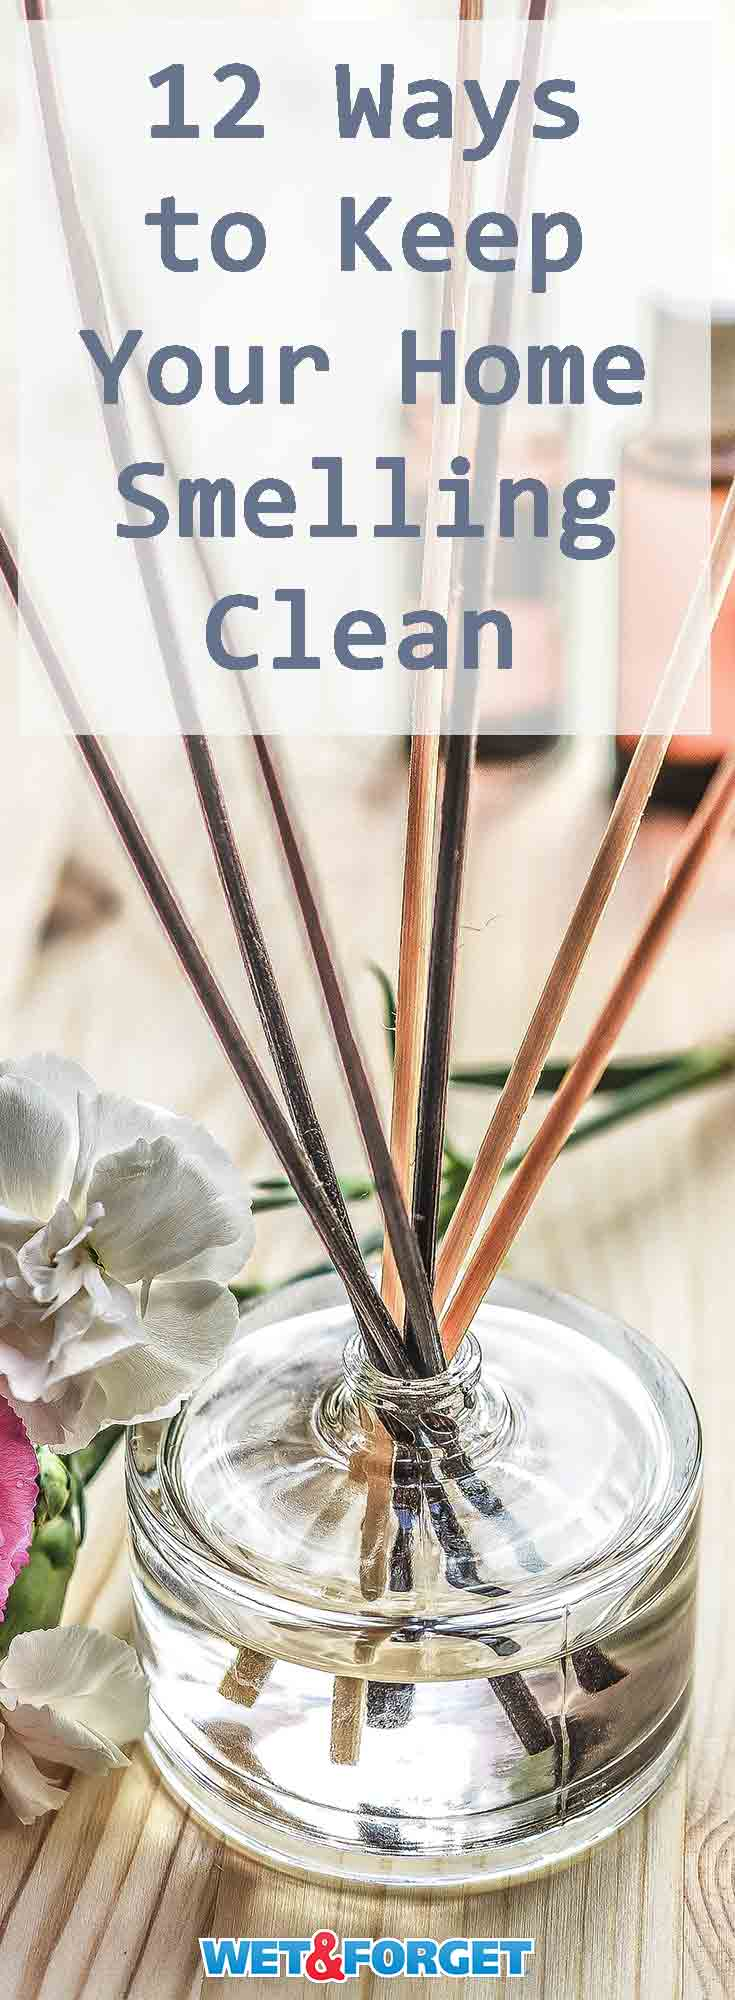 Refresh your home with these 12 easy ways to keep your home smelling clean!